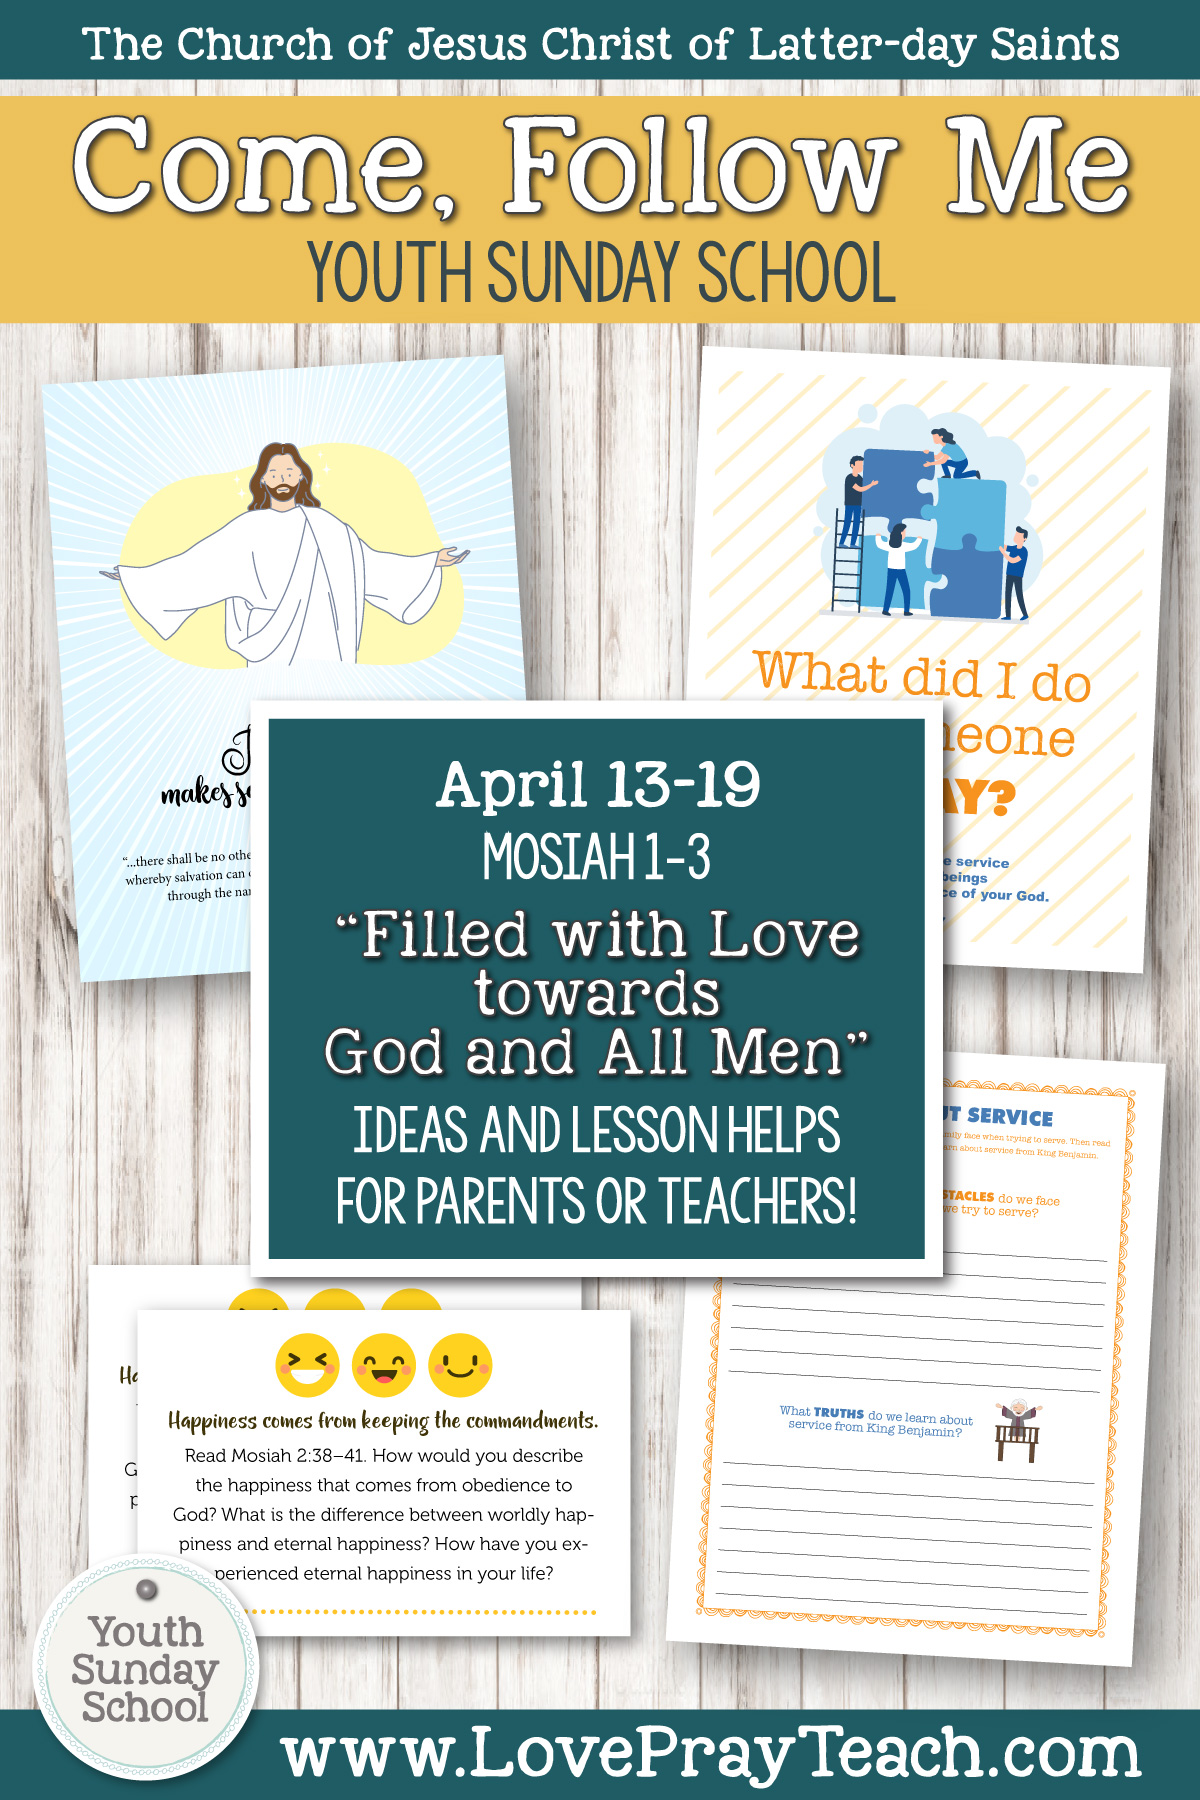 "Youth Sunday School Come, Follow Me Book of Mormon 2020 April 13–19 Mosiah 1–3 ""Filled with Love towards God and All Men"" Printable Lesson Packet for Latter-day Saints for Parents AND Teachers"